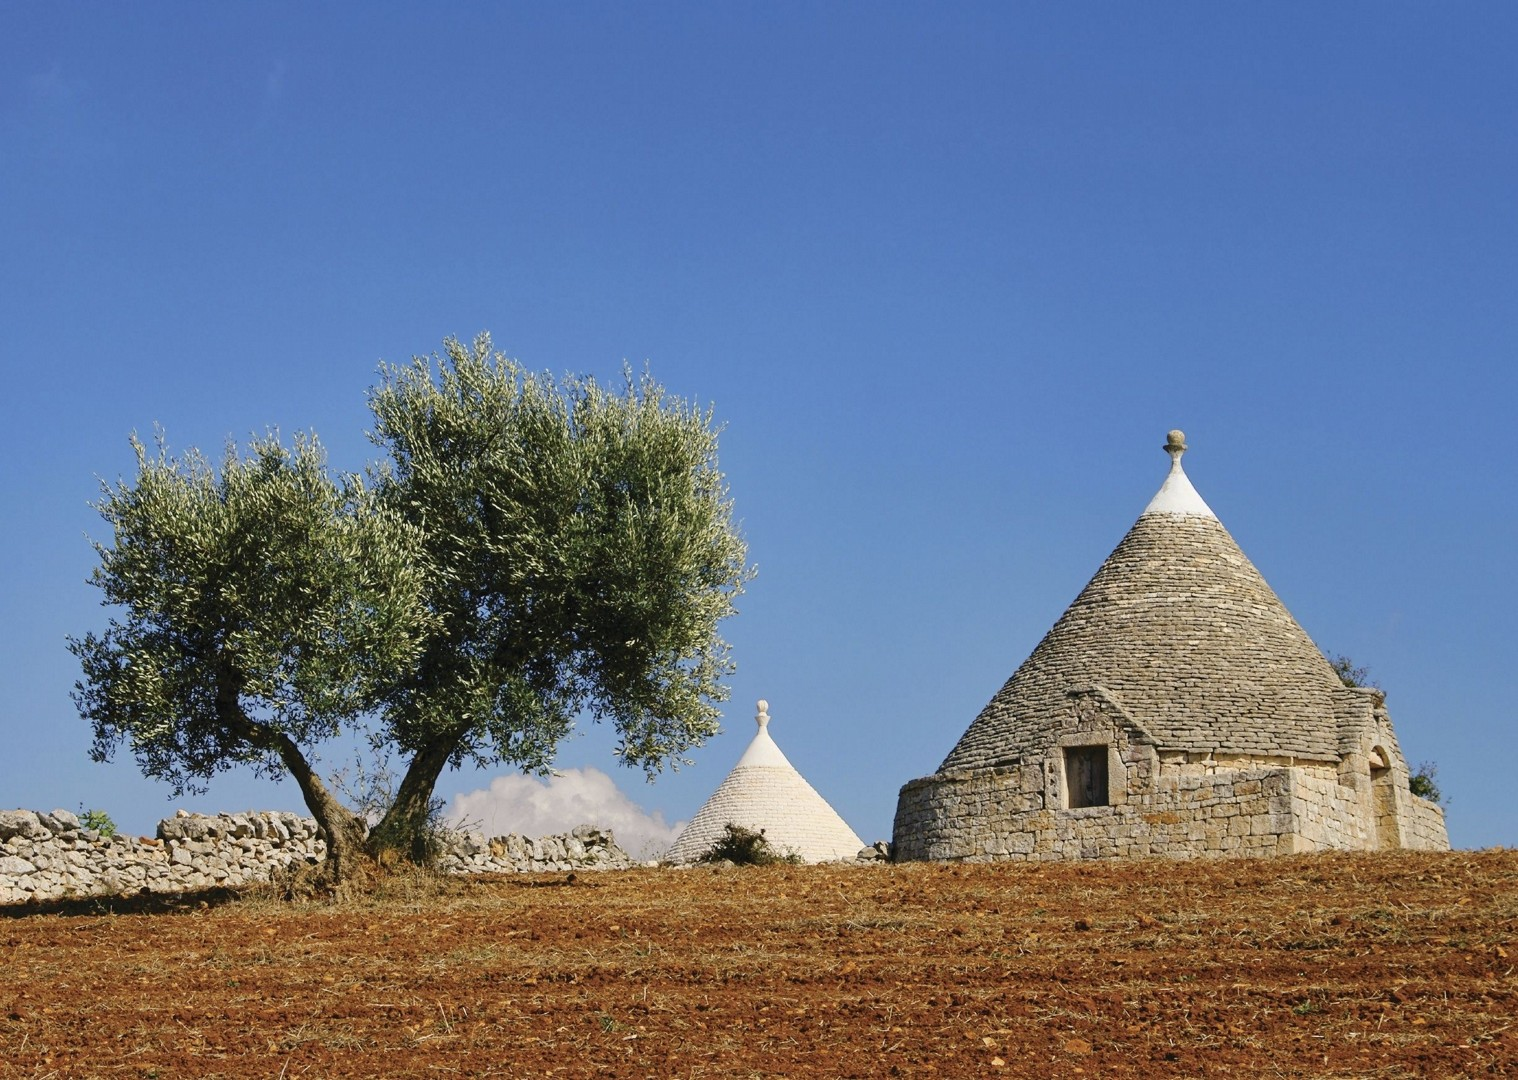 cycling-holiday-italy-puglia-trulli-culture.jpg - Italy - Puglia - Guided Leisure Cycling Holiday - Italia Leisure and Family Cycling